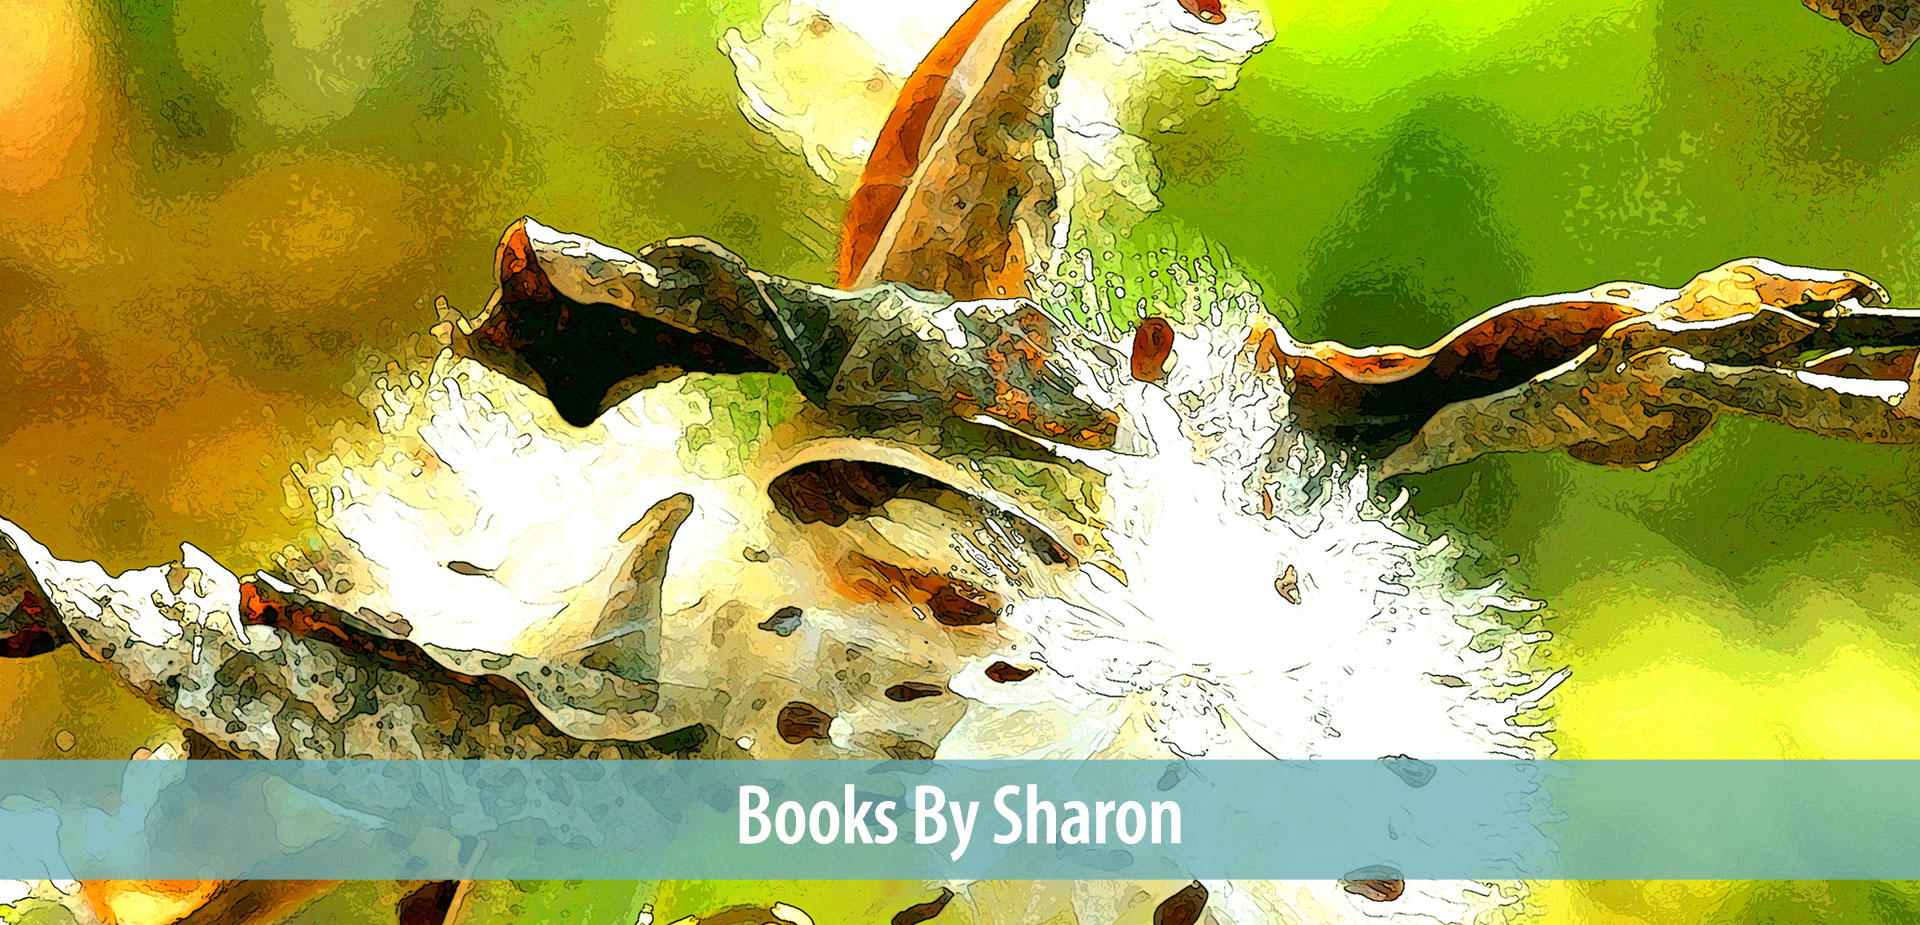 Books by Sharon